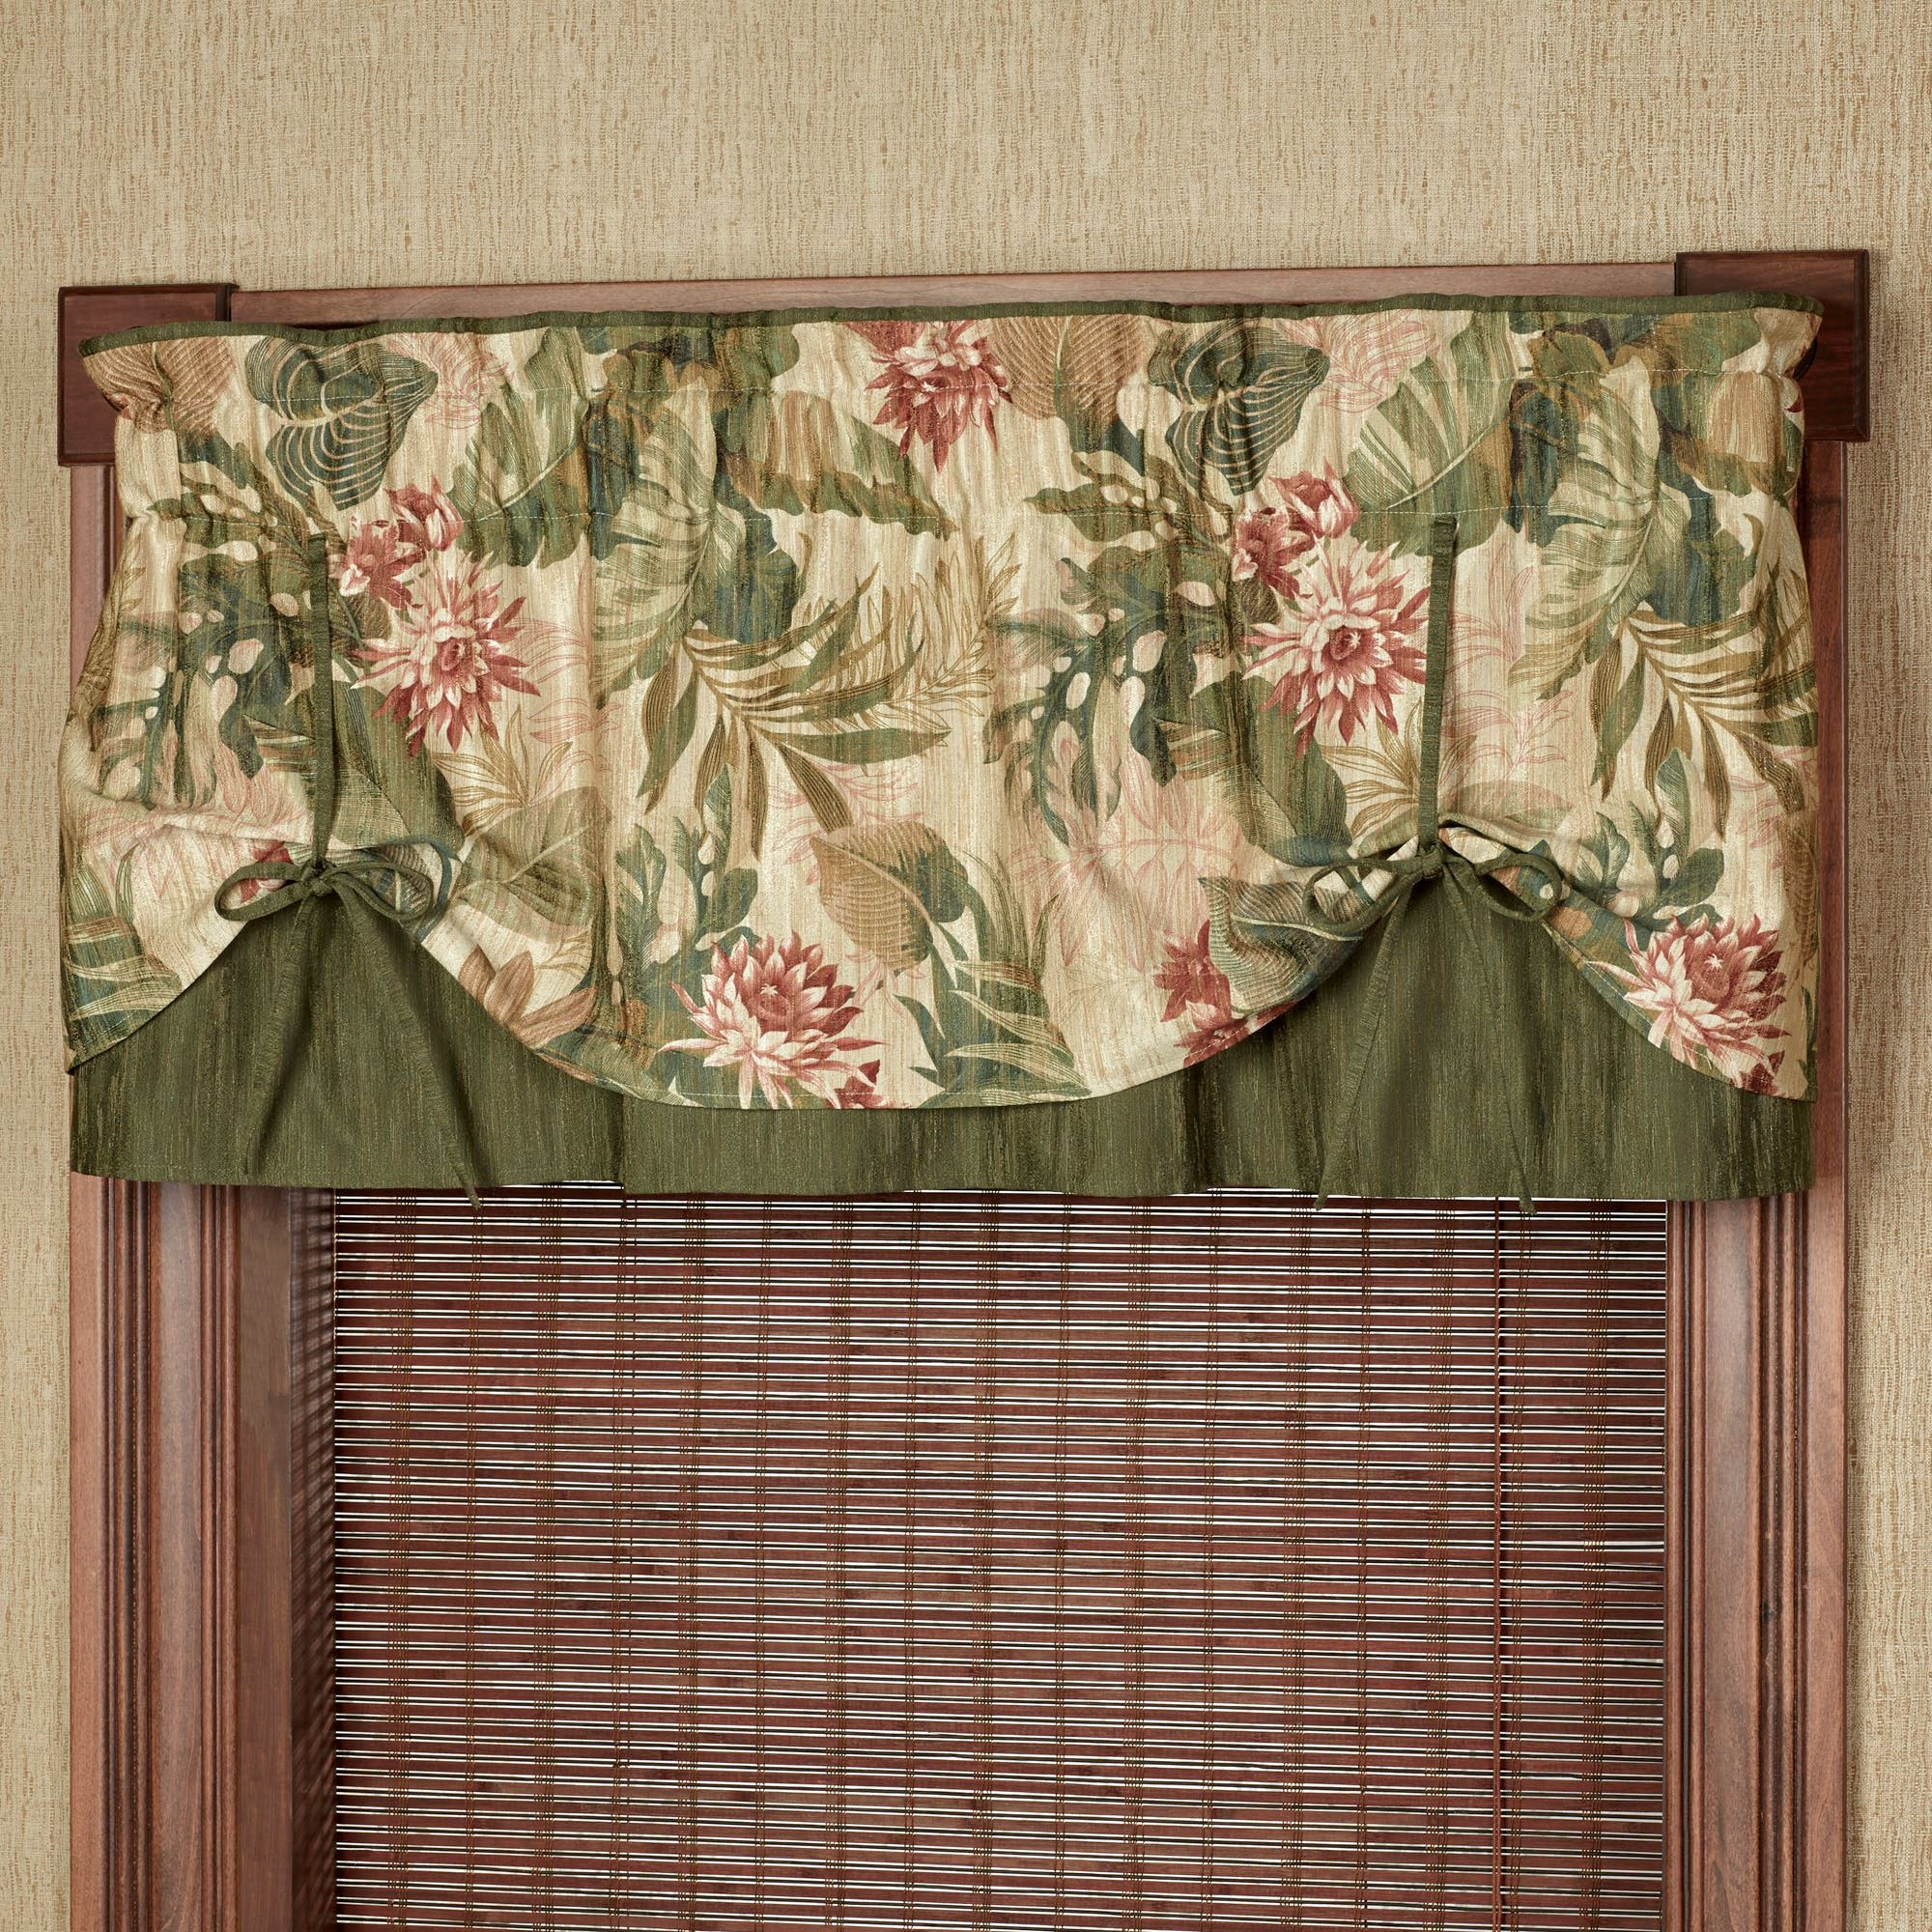 Top Tropical Haven Tie Up Valance Window Treatment PV21